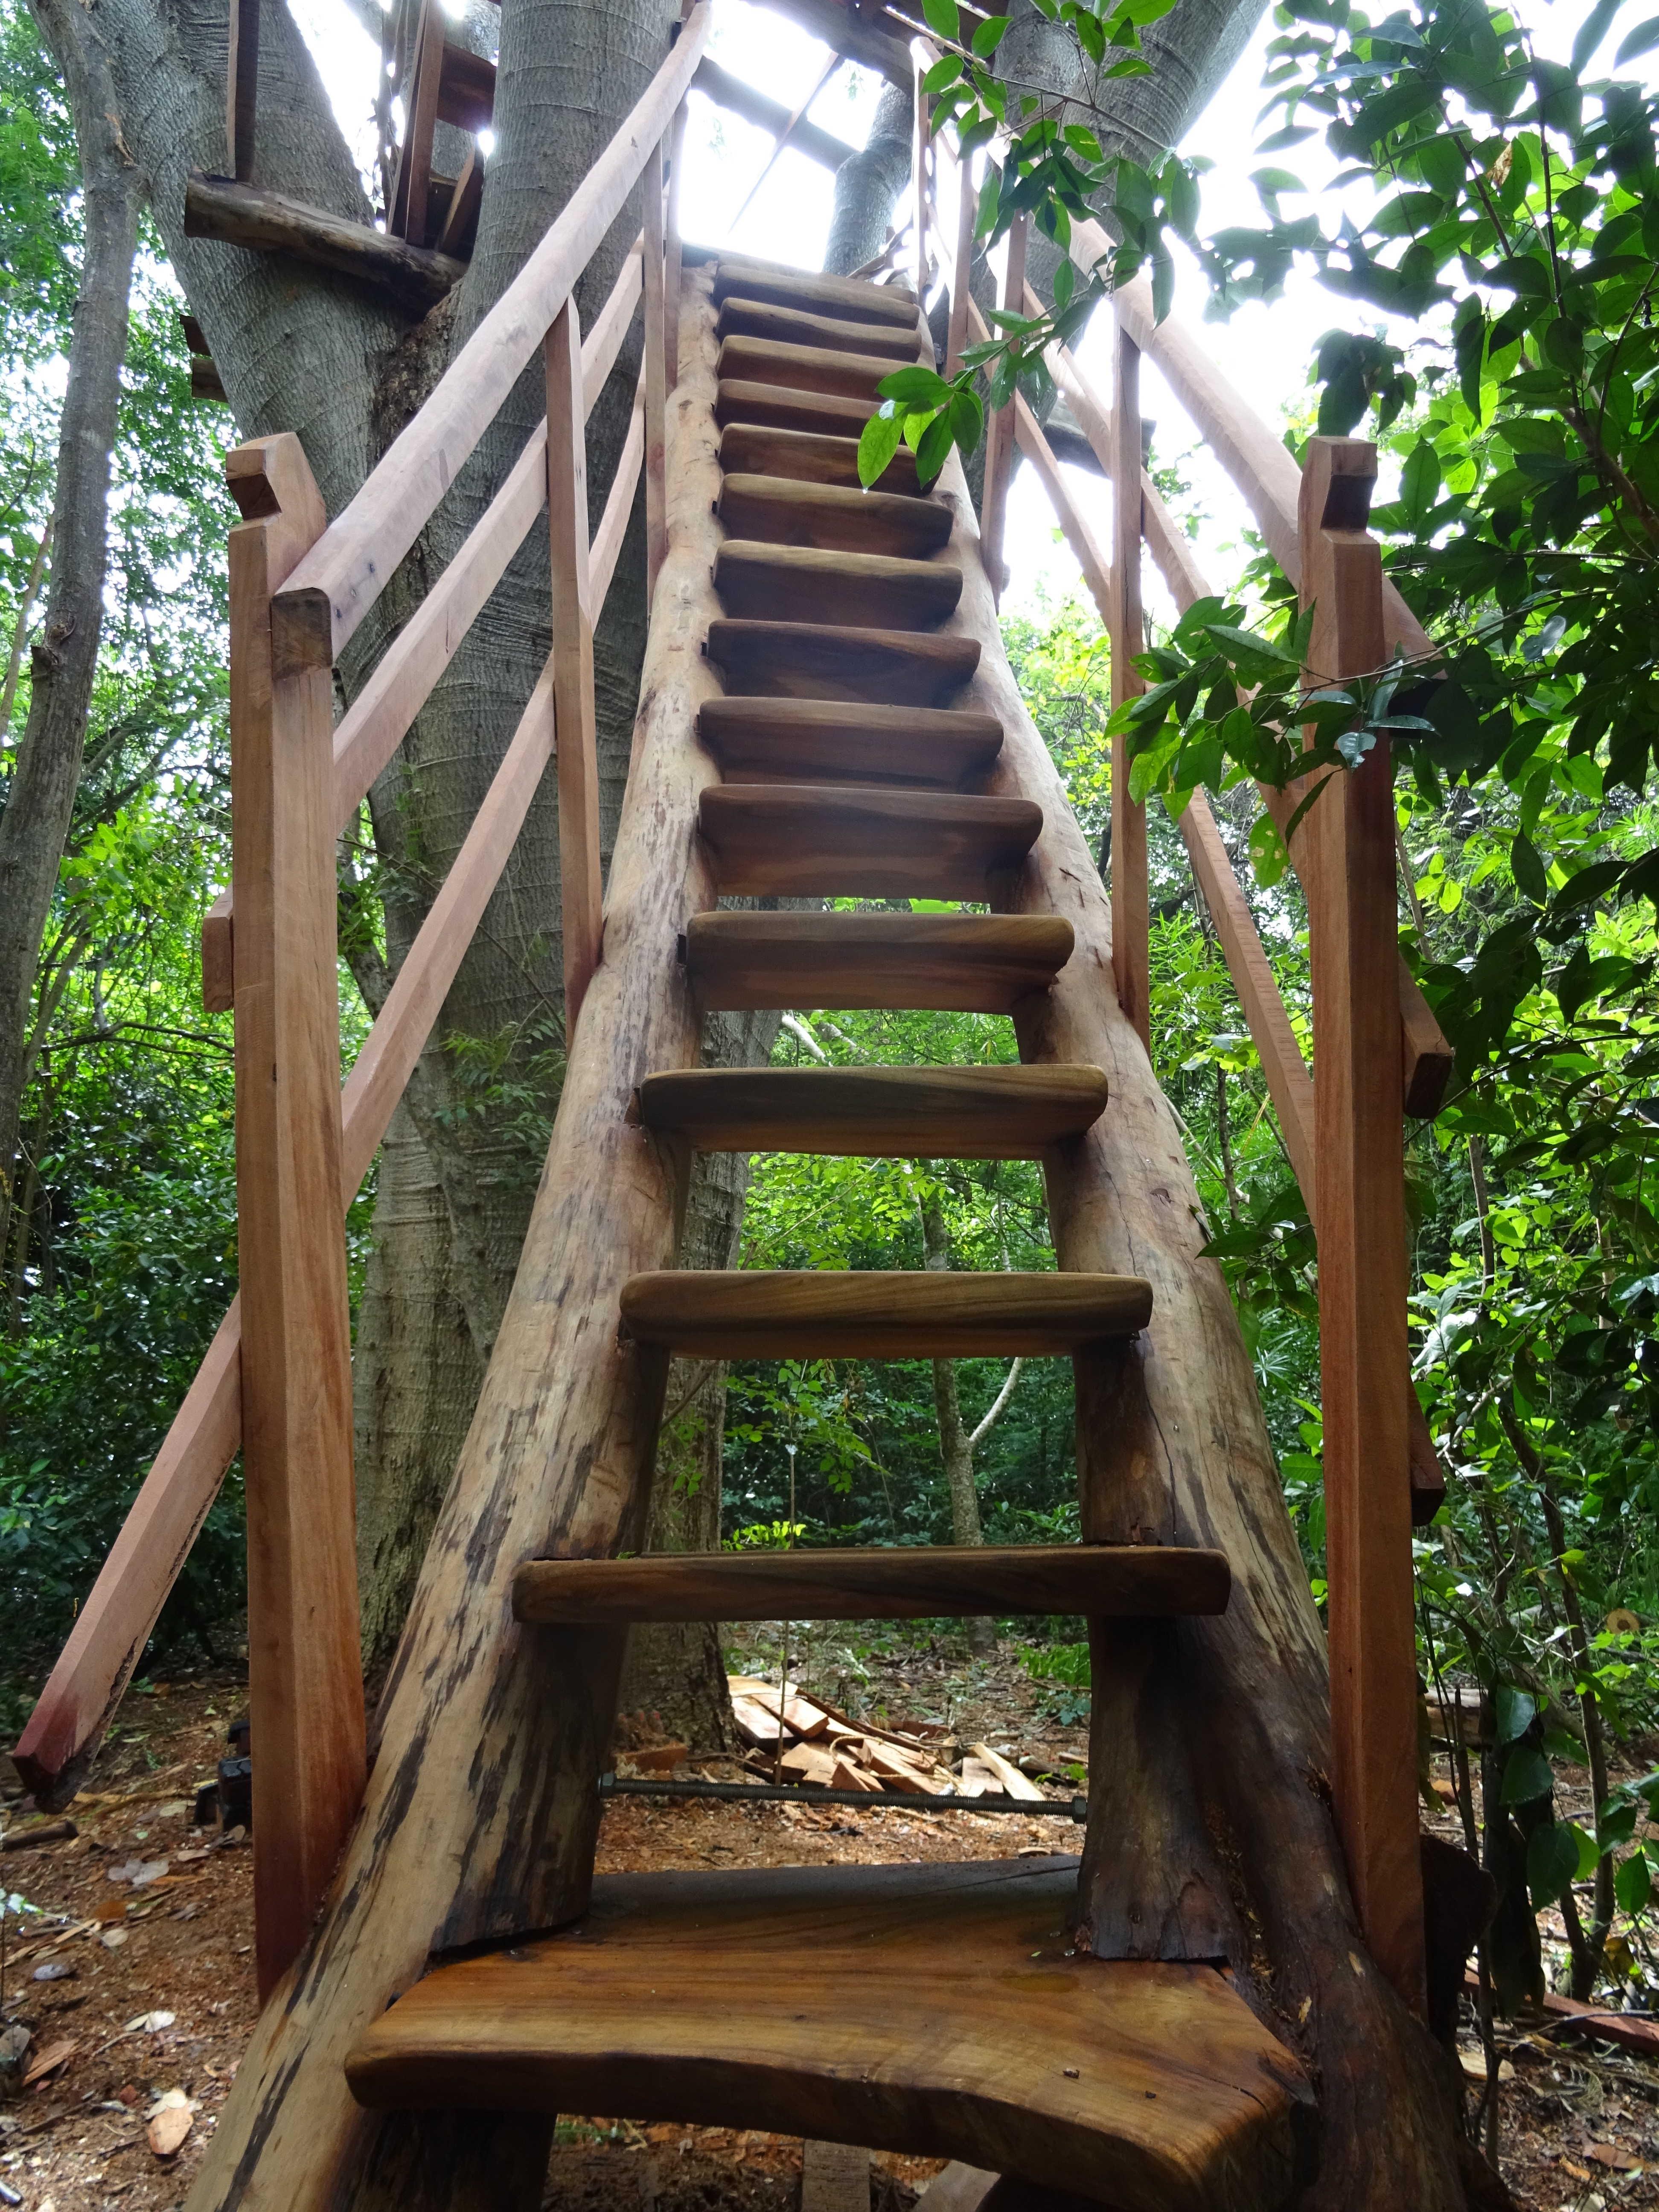 I Quickly Dashed Up The Stairs To Instal A Plaque Iu0027d Made For The Treehouse  Which Included Some Details About When ...